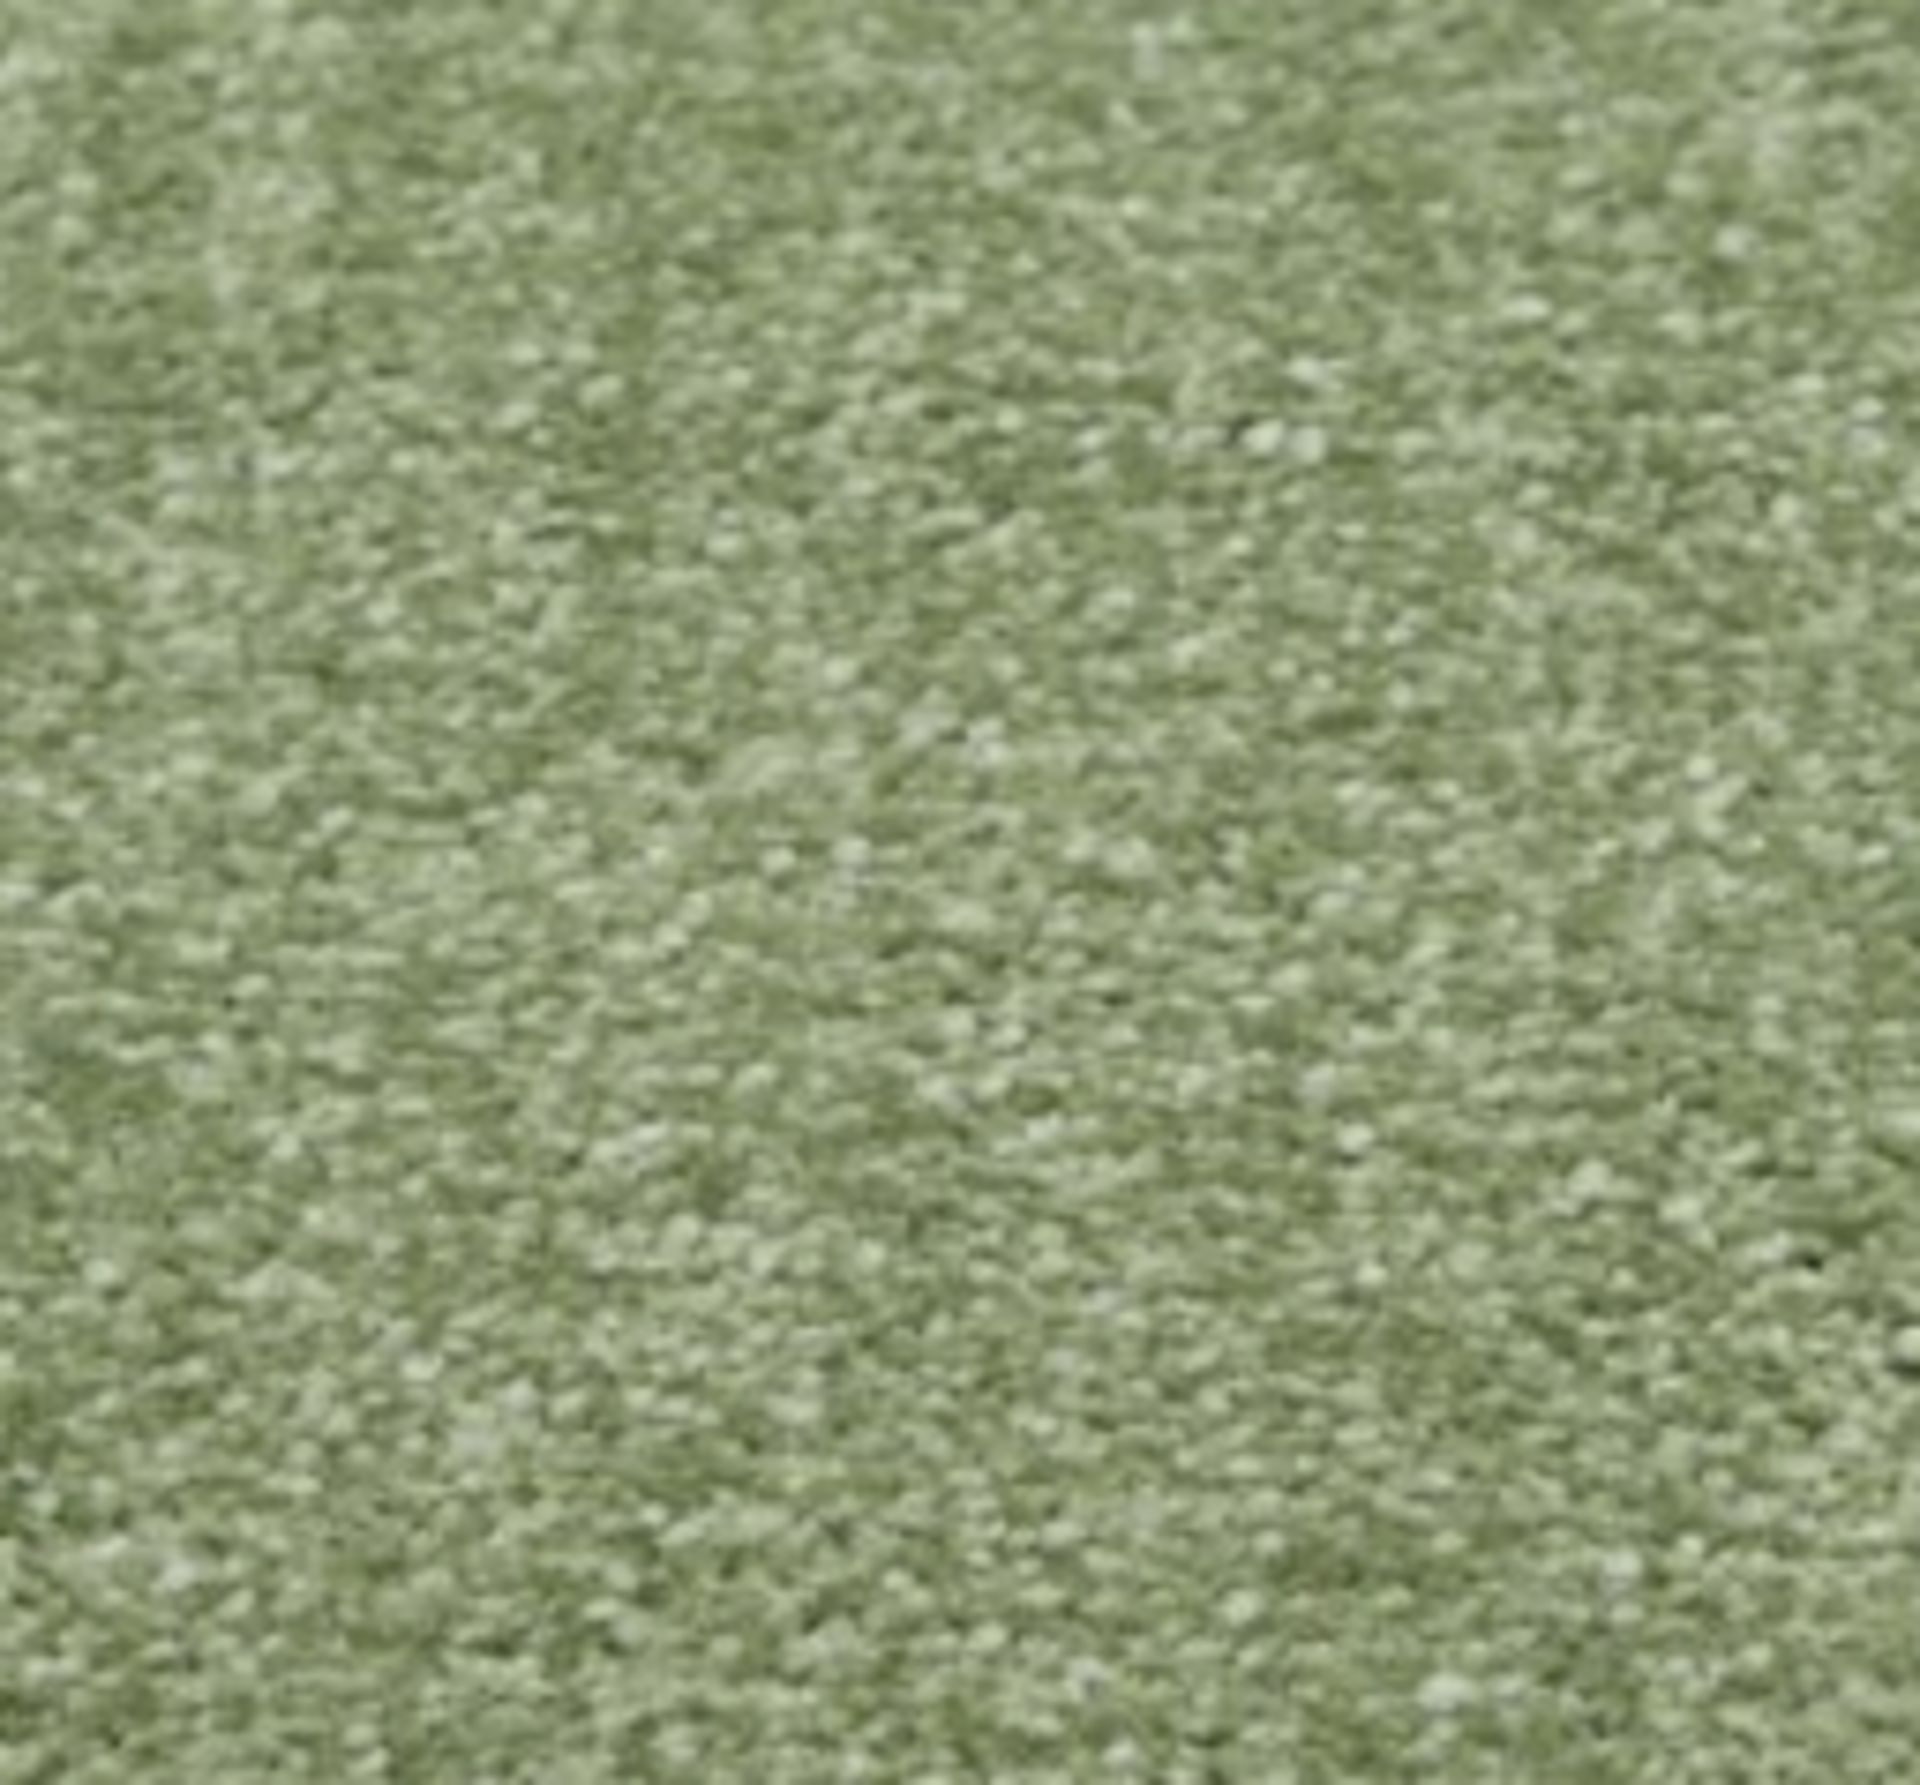 RRP £200 Bagged And Rolled Burford Green 4M X 3.20M Carpet (133048)